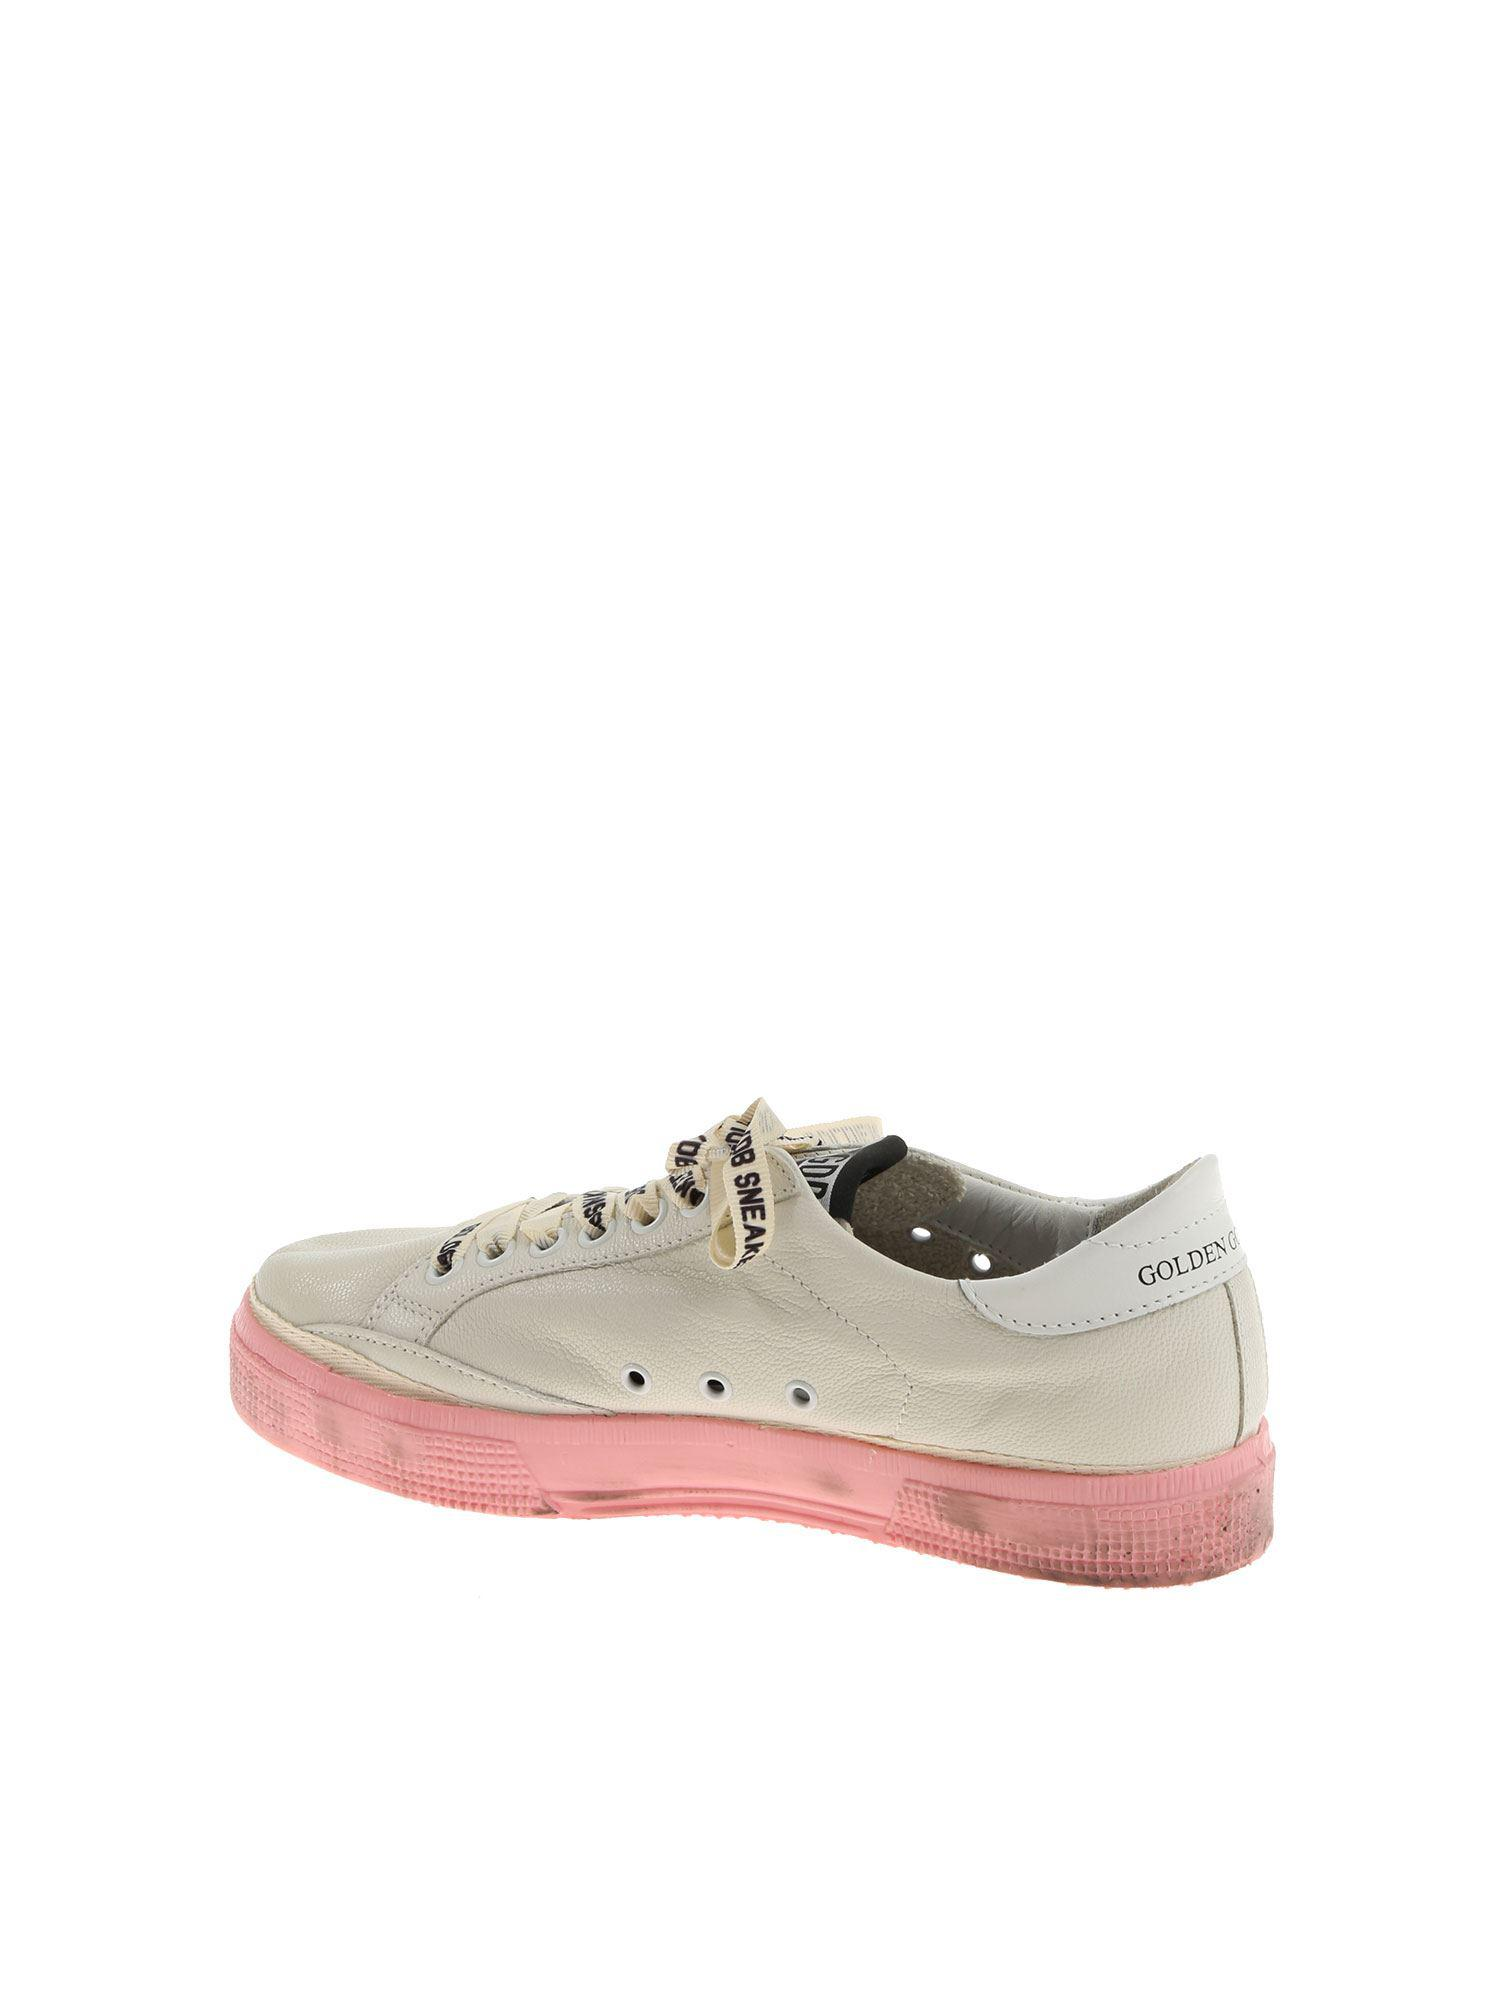 Golden Goose Deluxe Brand Leather White And Pink May Sneakers